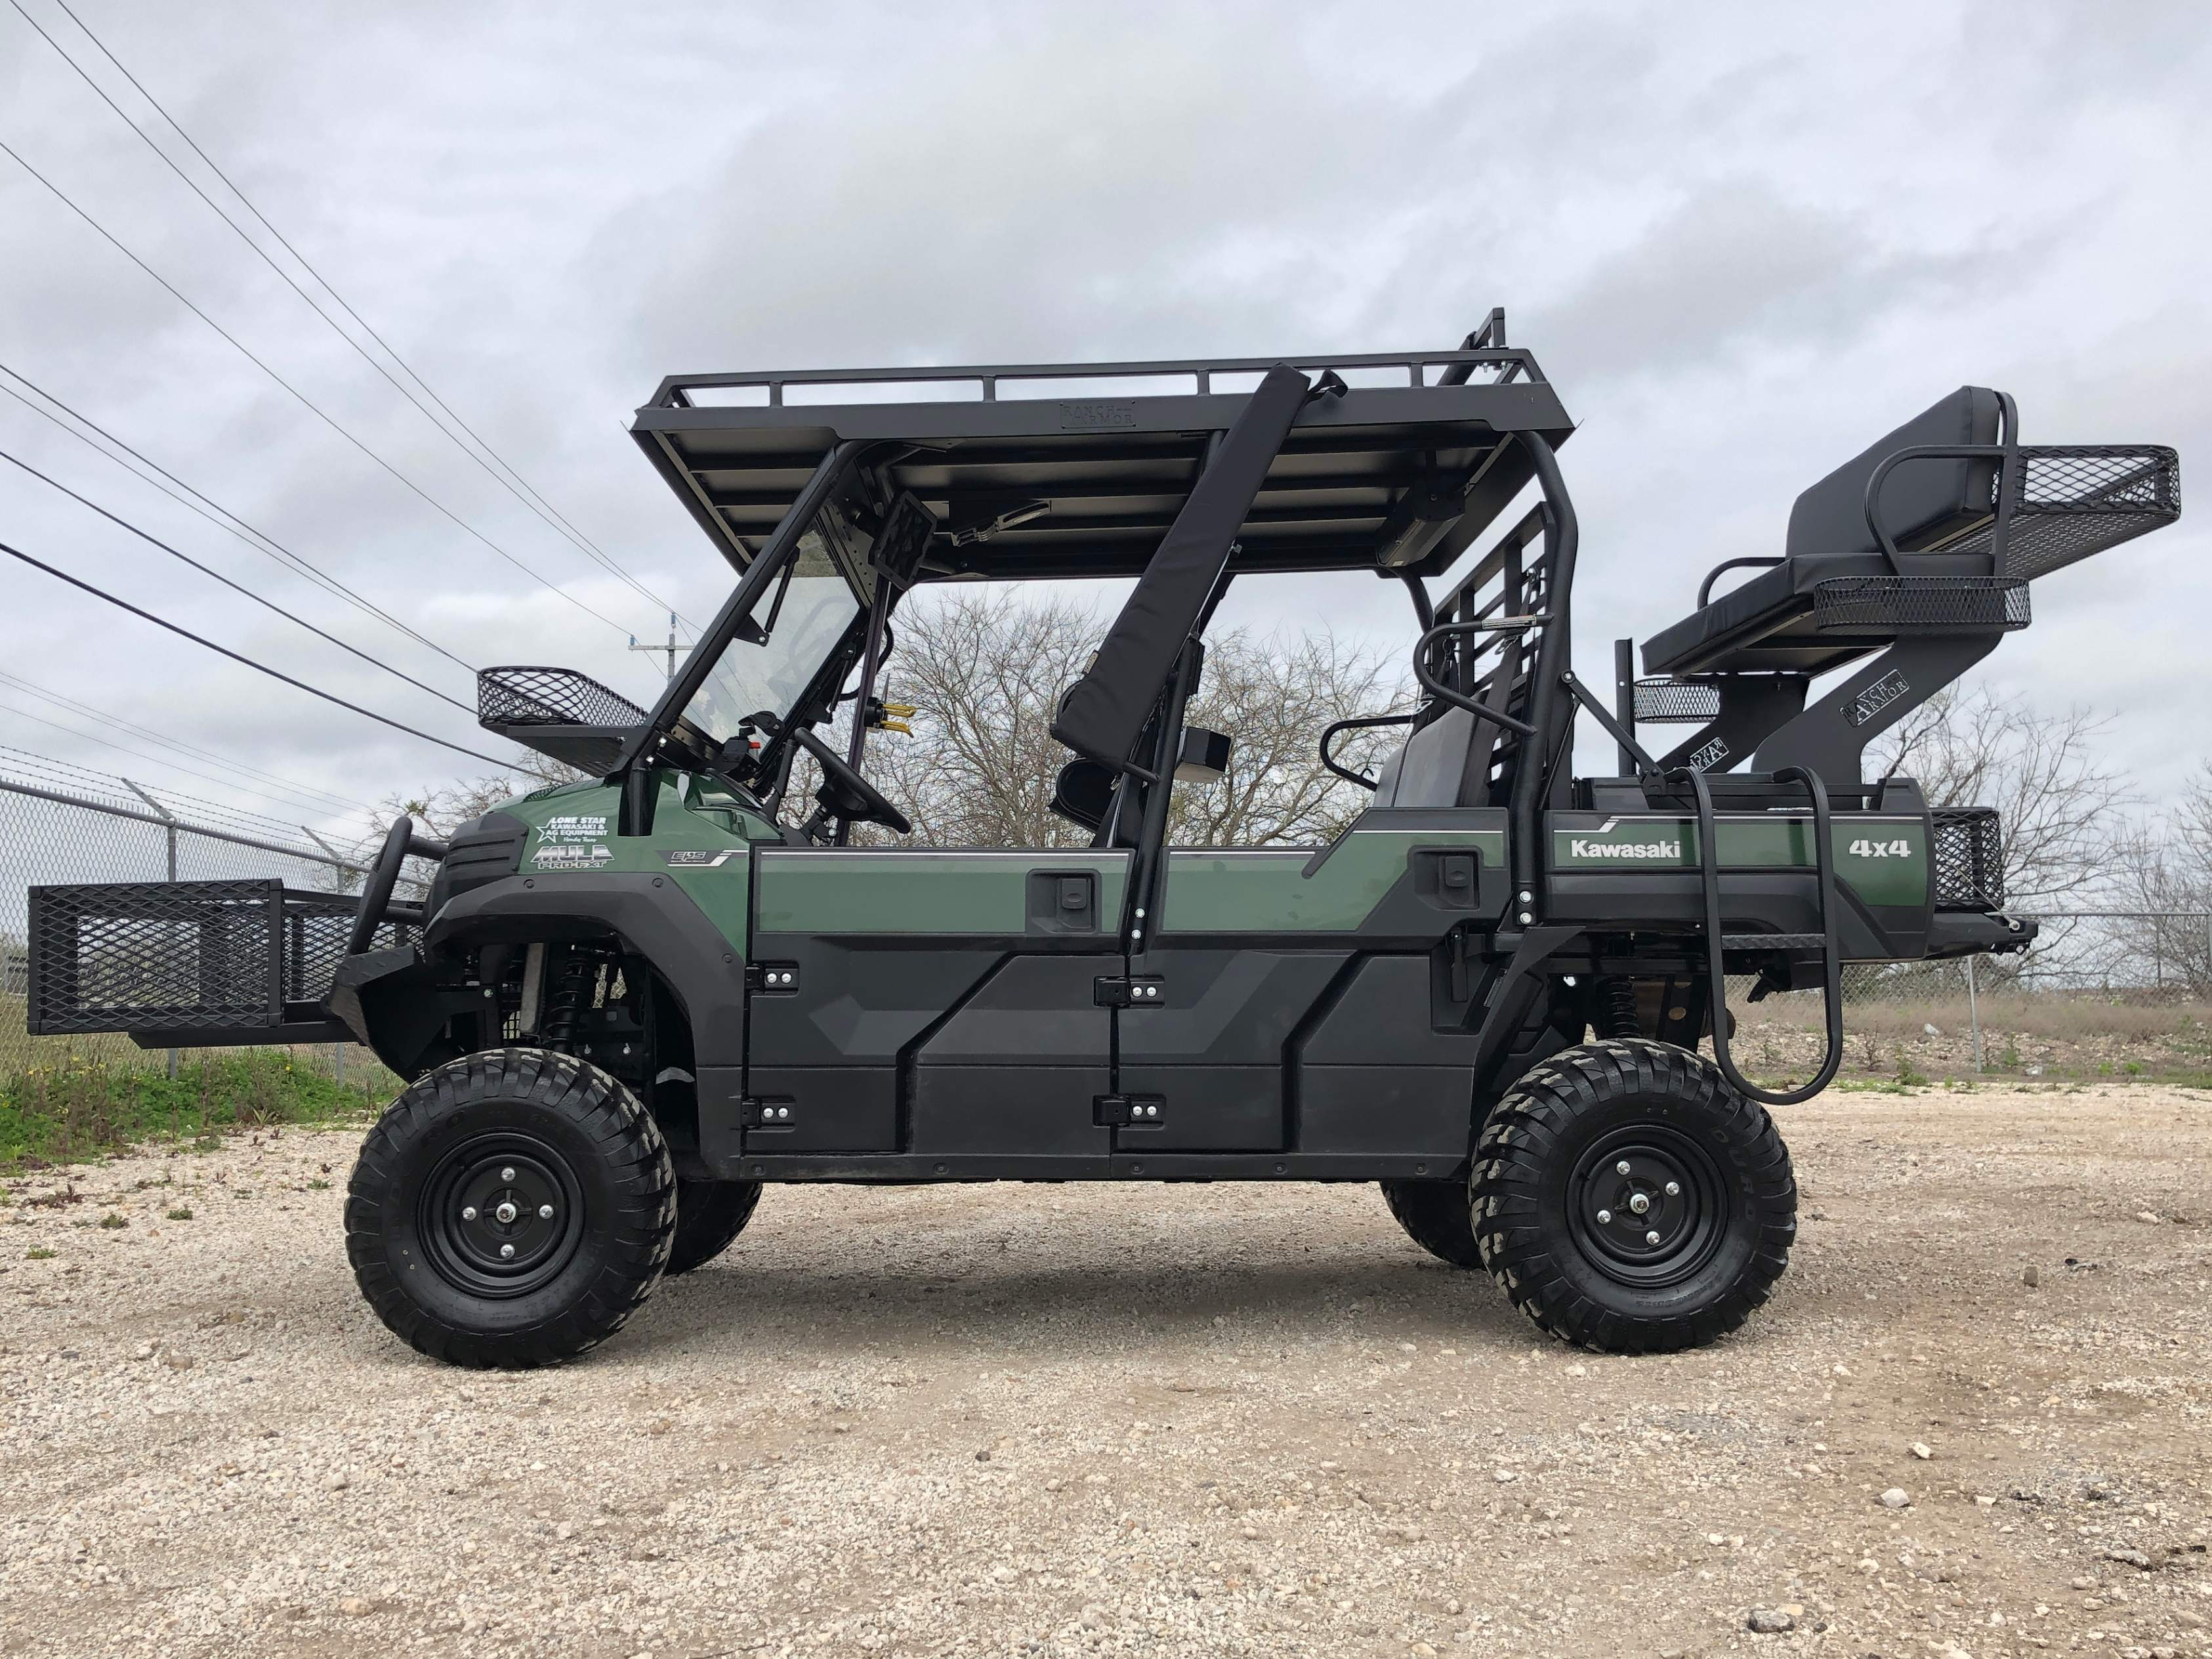 2019-kawasaki-mule-pro-fxt-outfit-metal-top-high-seat-bumper-by-ranch-armor.jpg